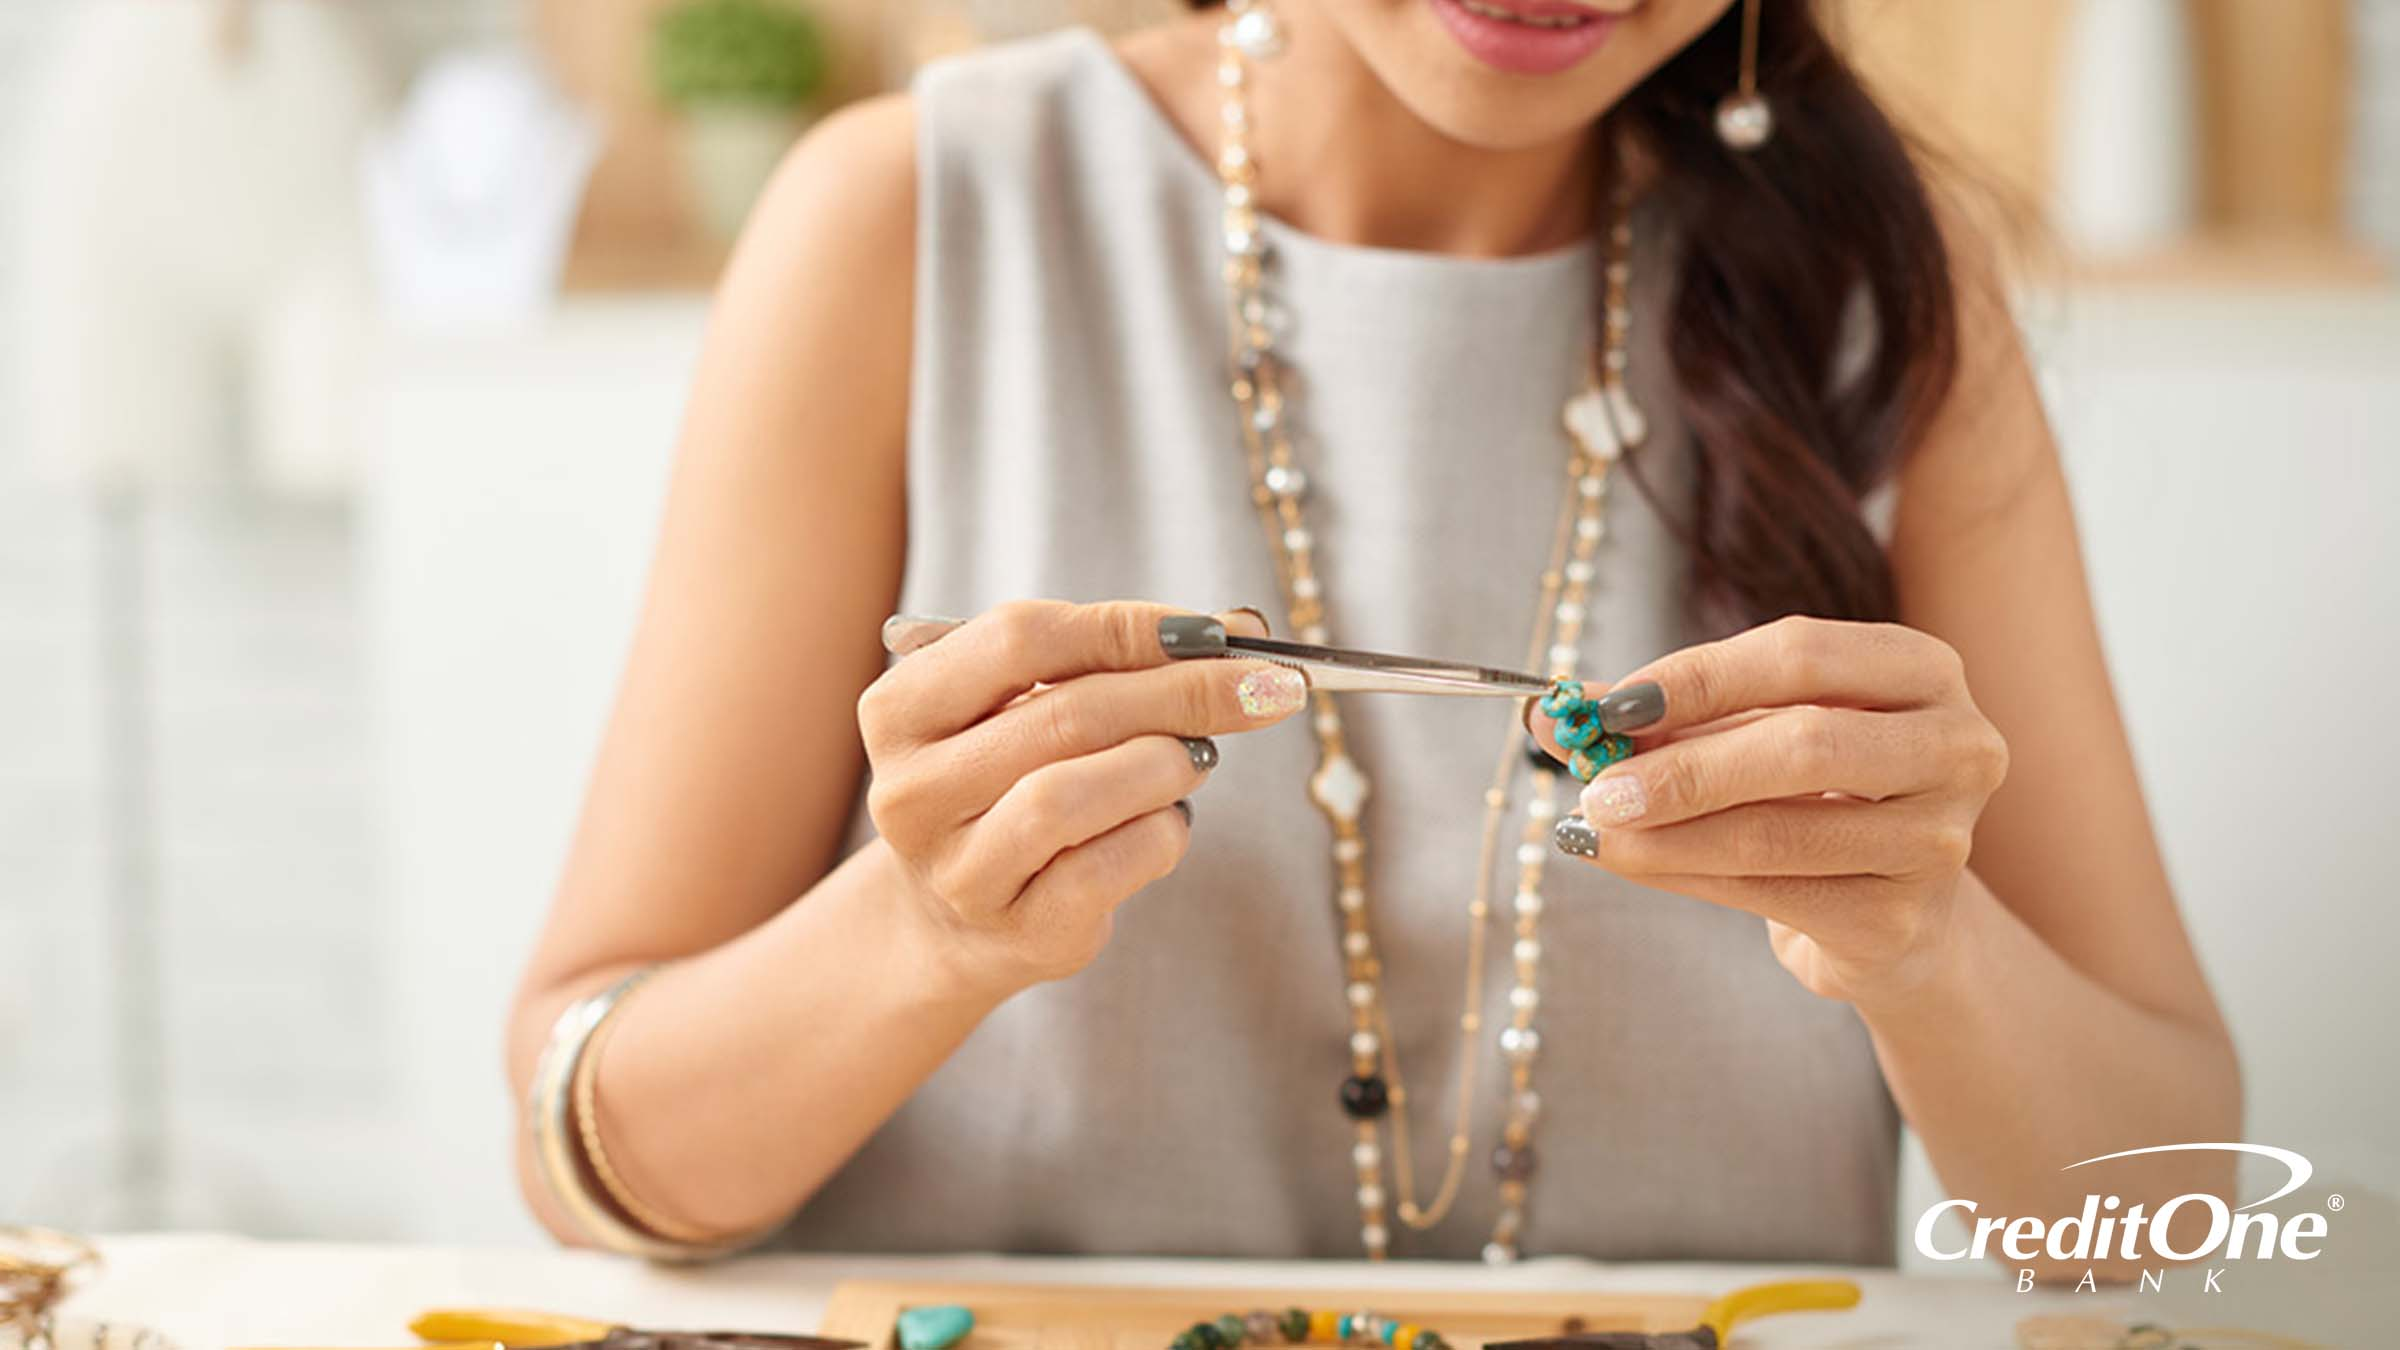 Woman with a side-hobby of designing her own jewelry